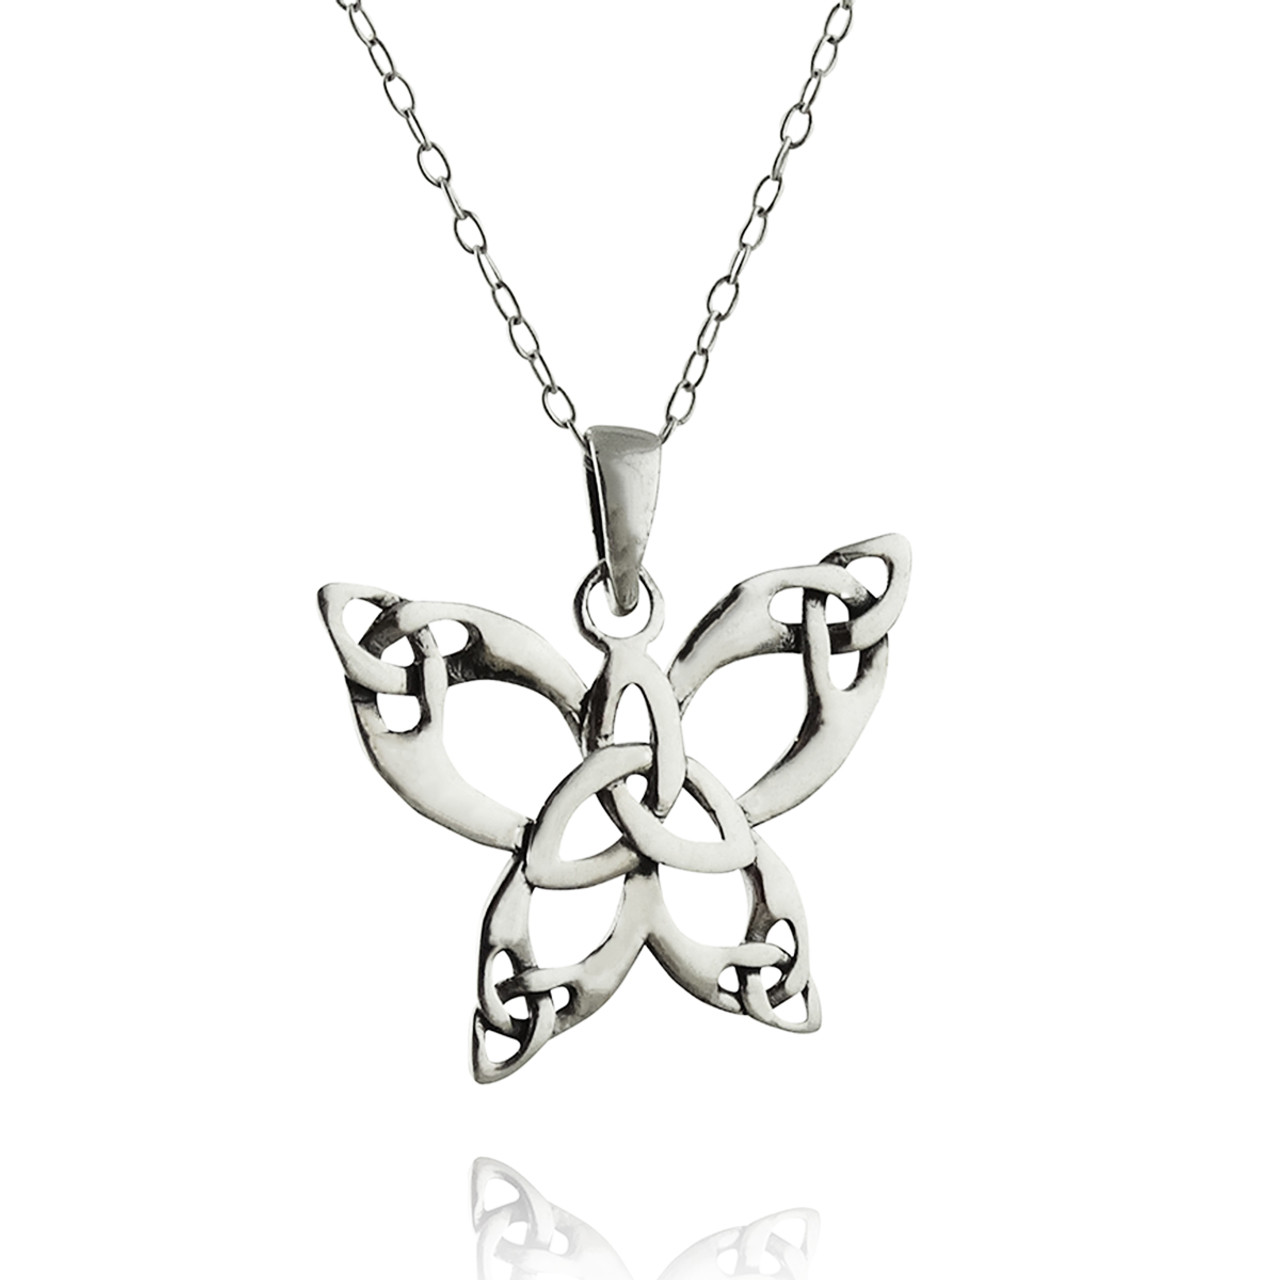 FashionJunkie4Life Sterling Silver Inspirational Butterfly Charm Necklace 18 Chain